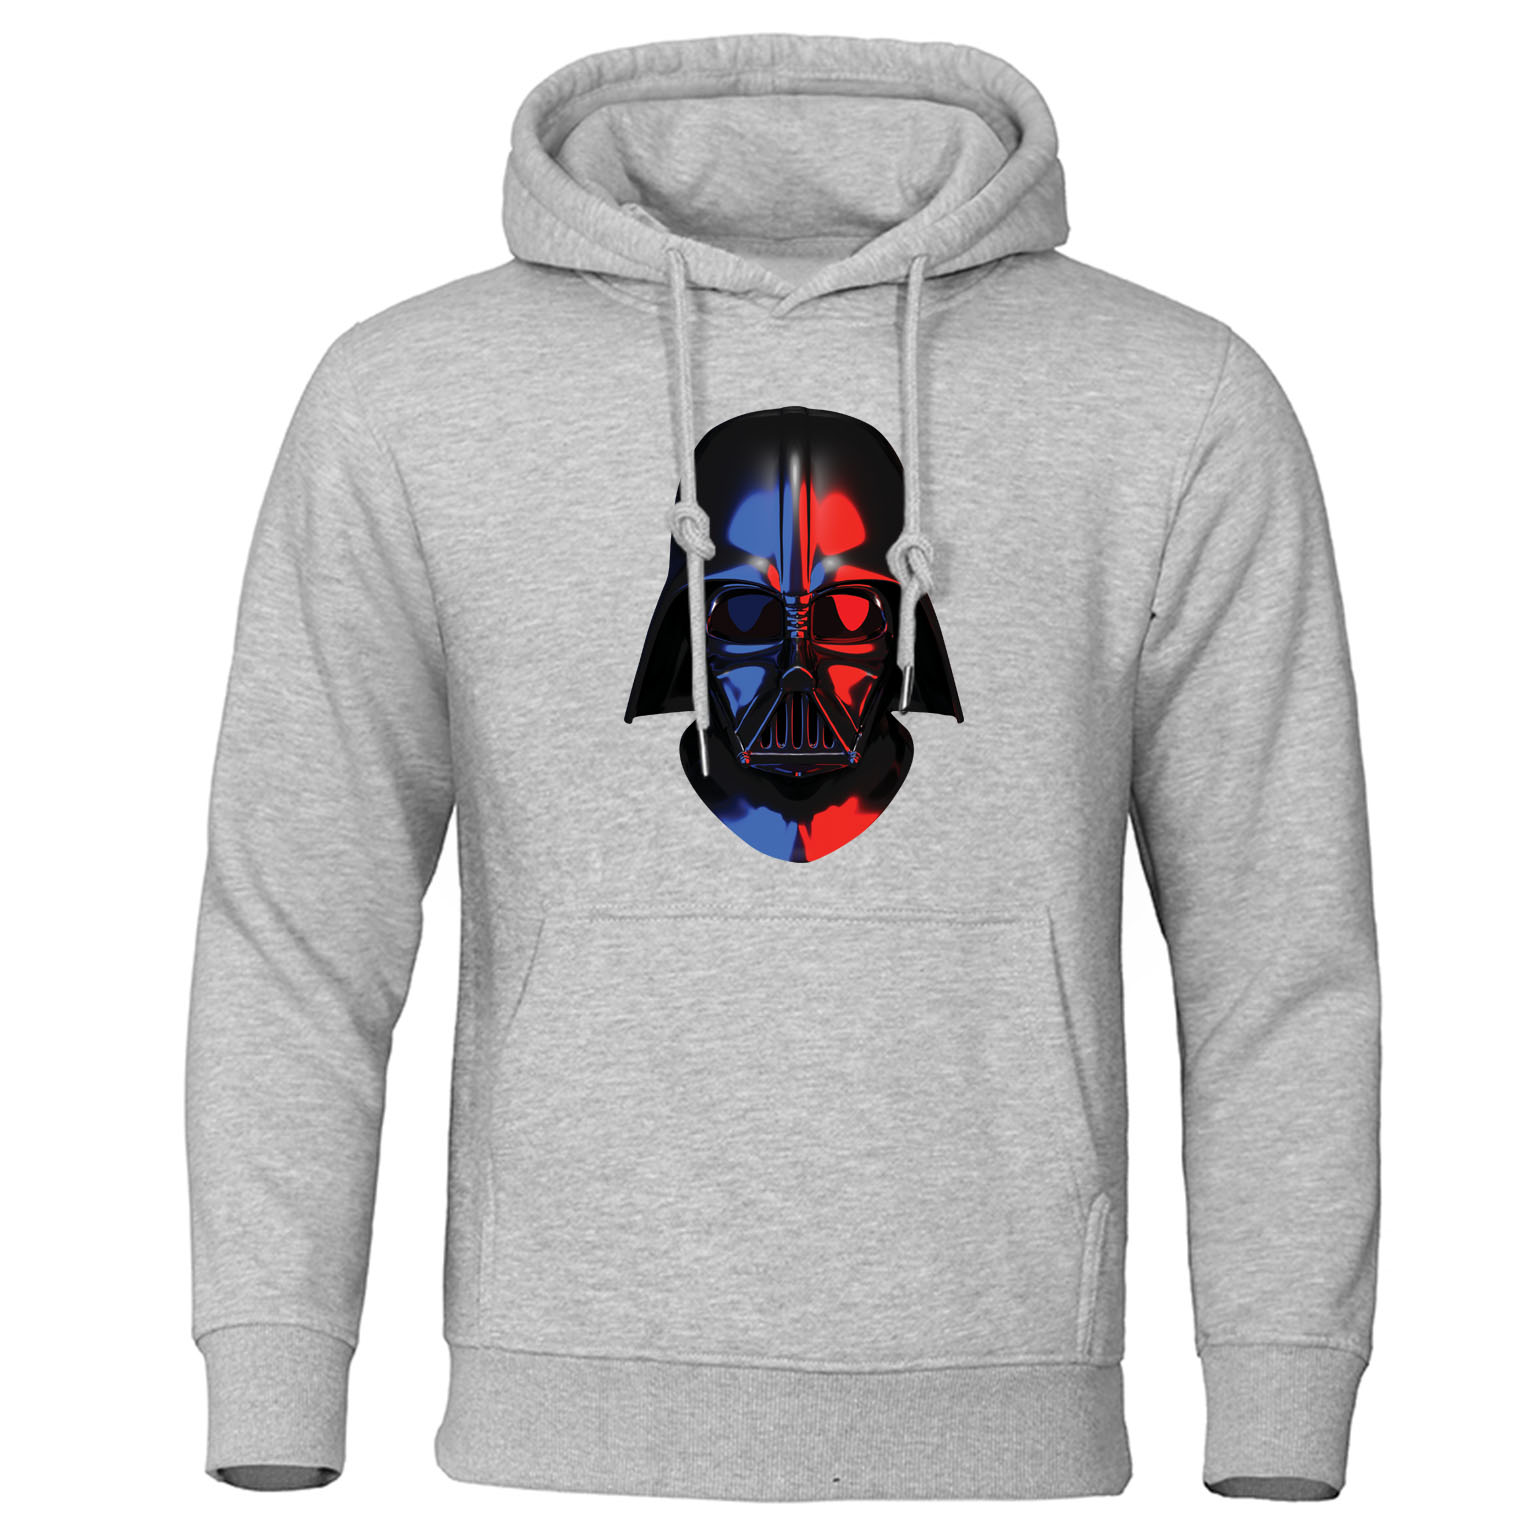 Darth Vader Streetwear Hoody star wars Hoodie Autumn Winter men Tracksuit Funny novel Men's Sweatshirt Harajuku Hip Hop Pullover image